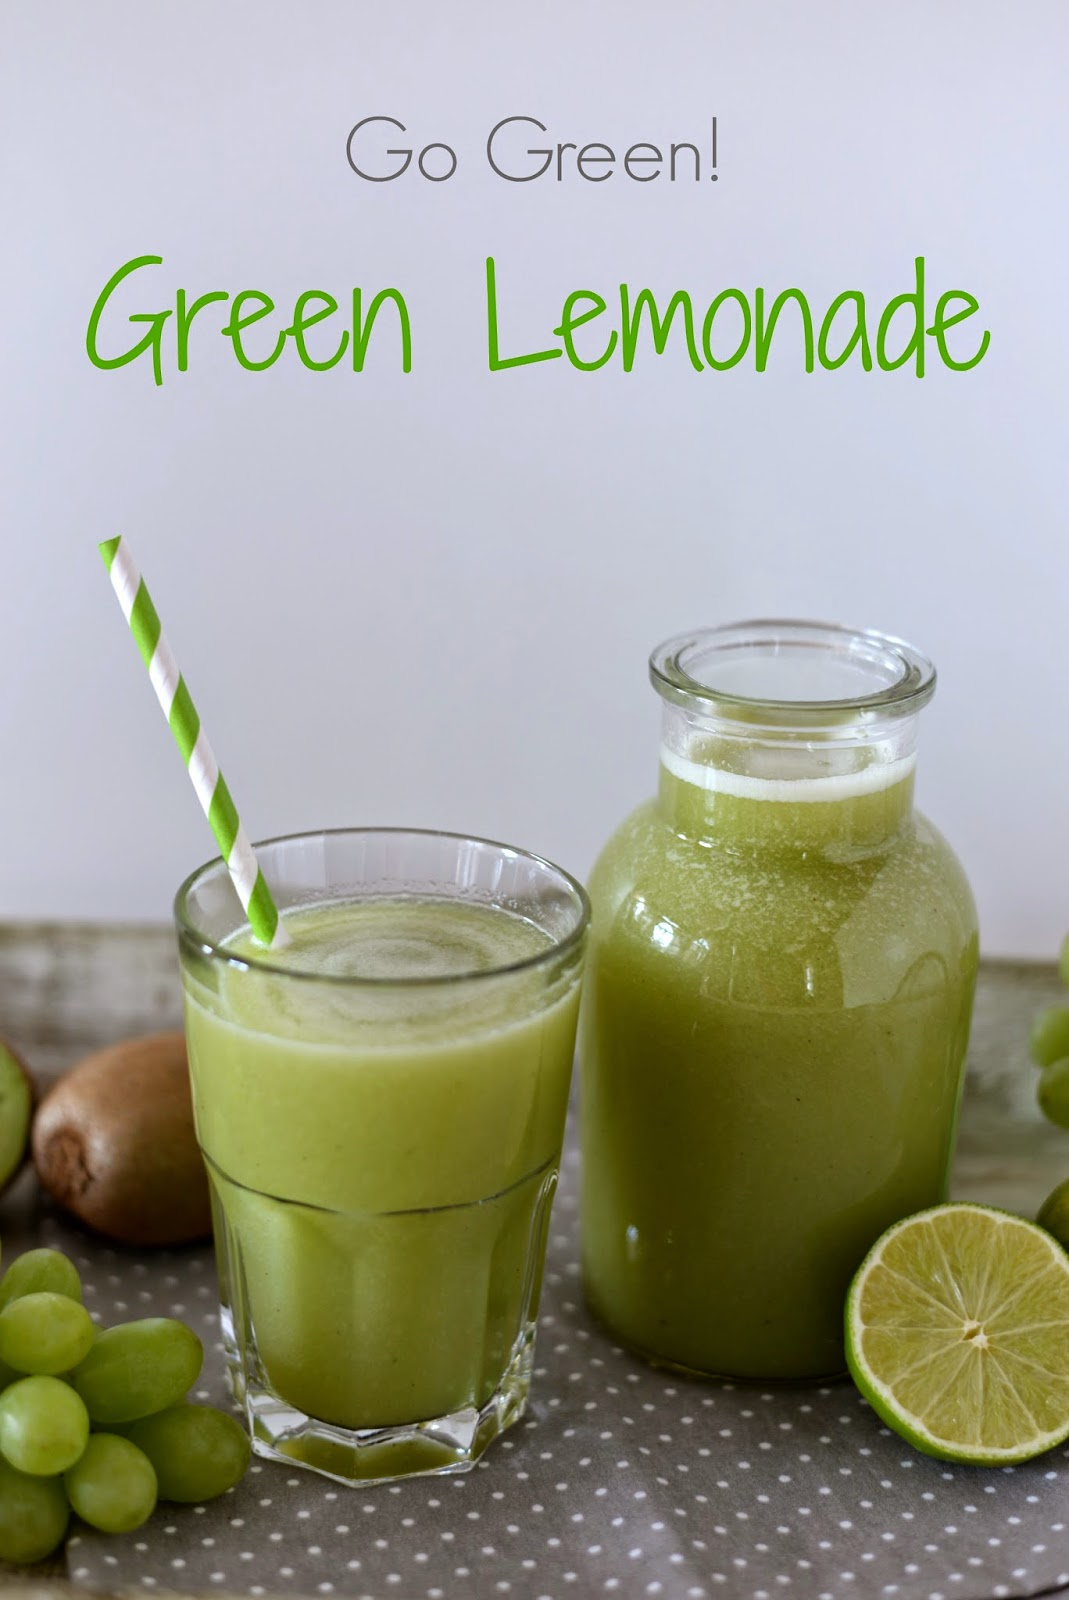 green lemonade, green, lemonade, grüne limonade, grün, limonade, limo, drink, trinken, getränk, saint patrick's day, saint patrick, yummy, lecker, food, obst, fruits, fruit, foodie, foodblogger, foodphotography, kipferlundkrapferl